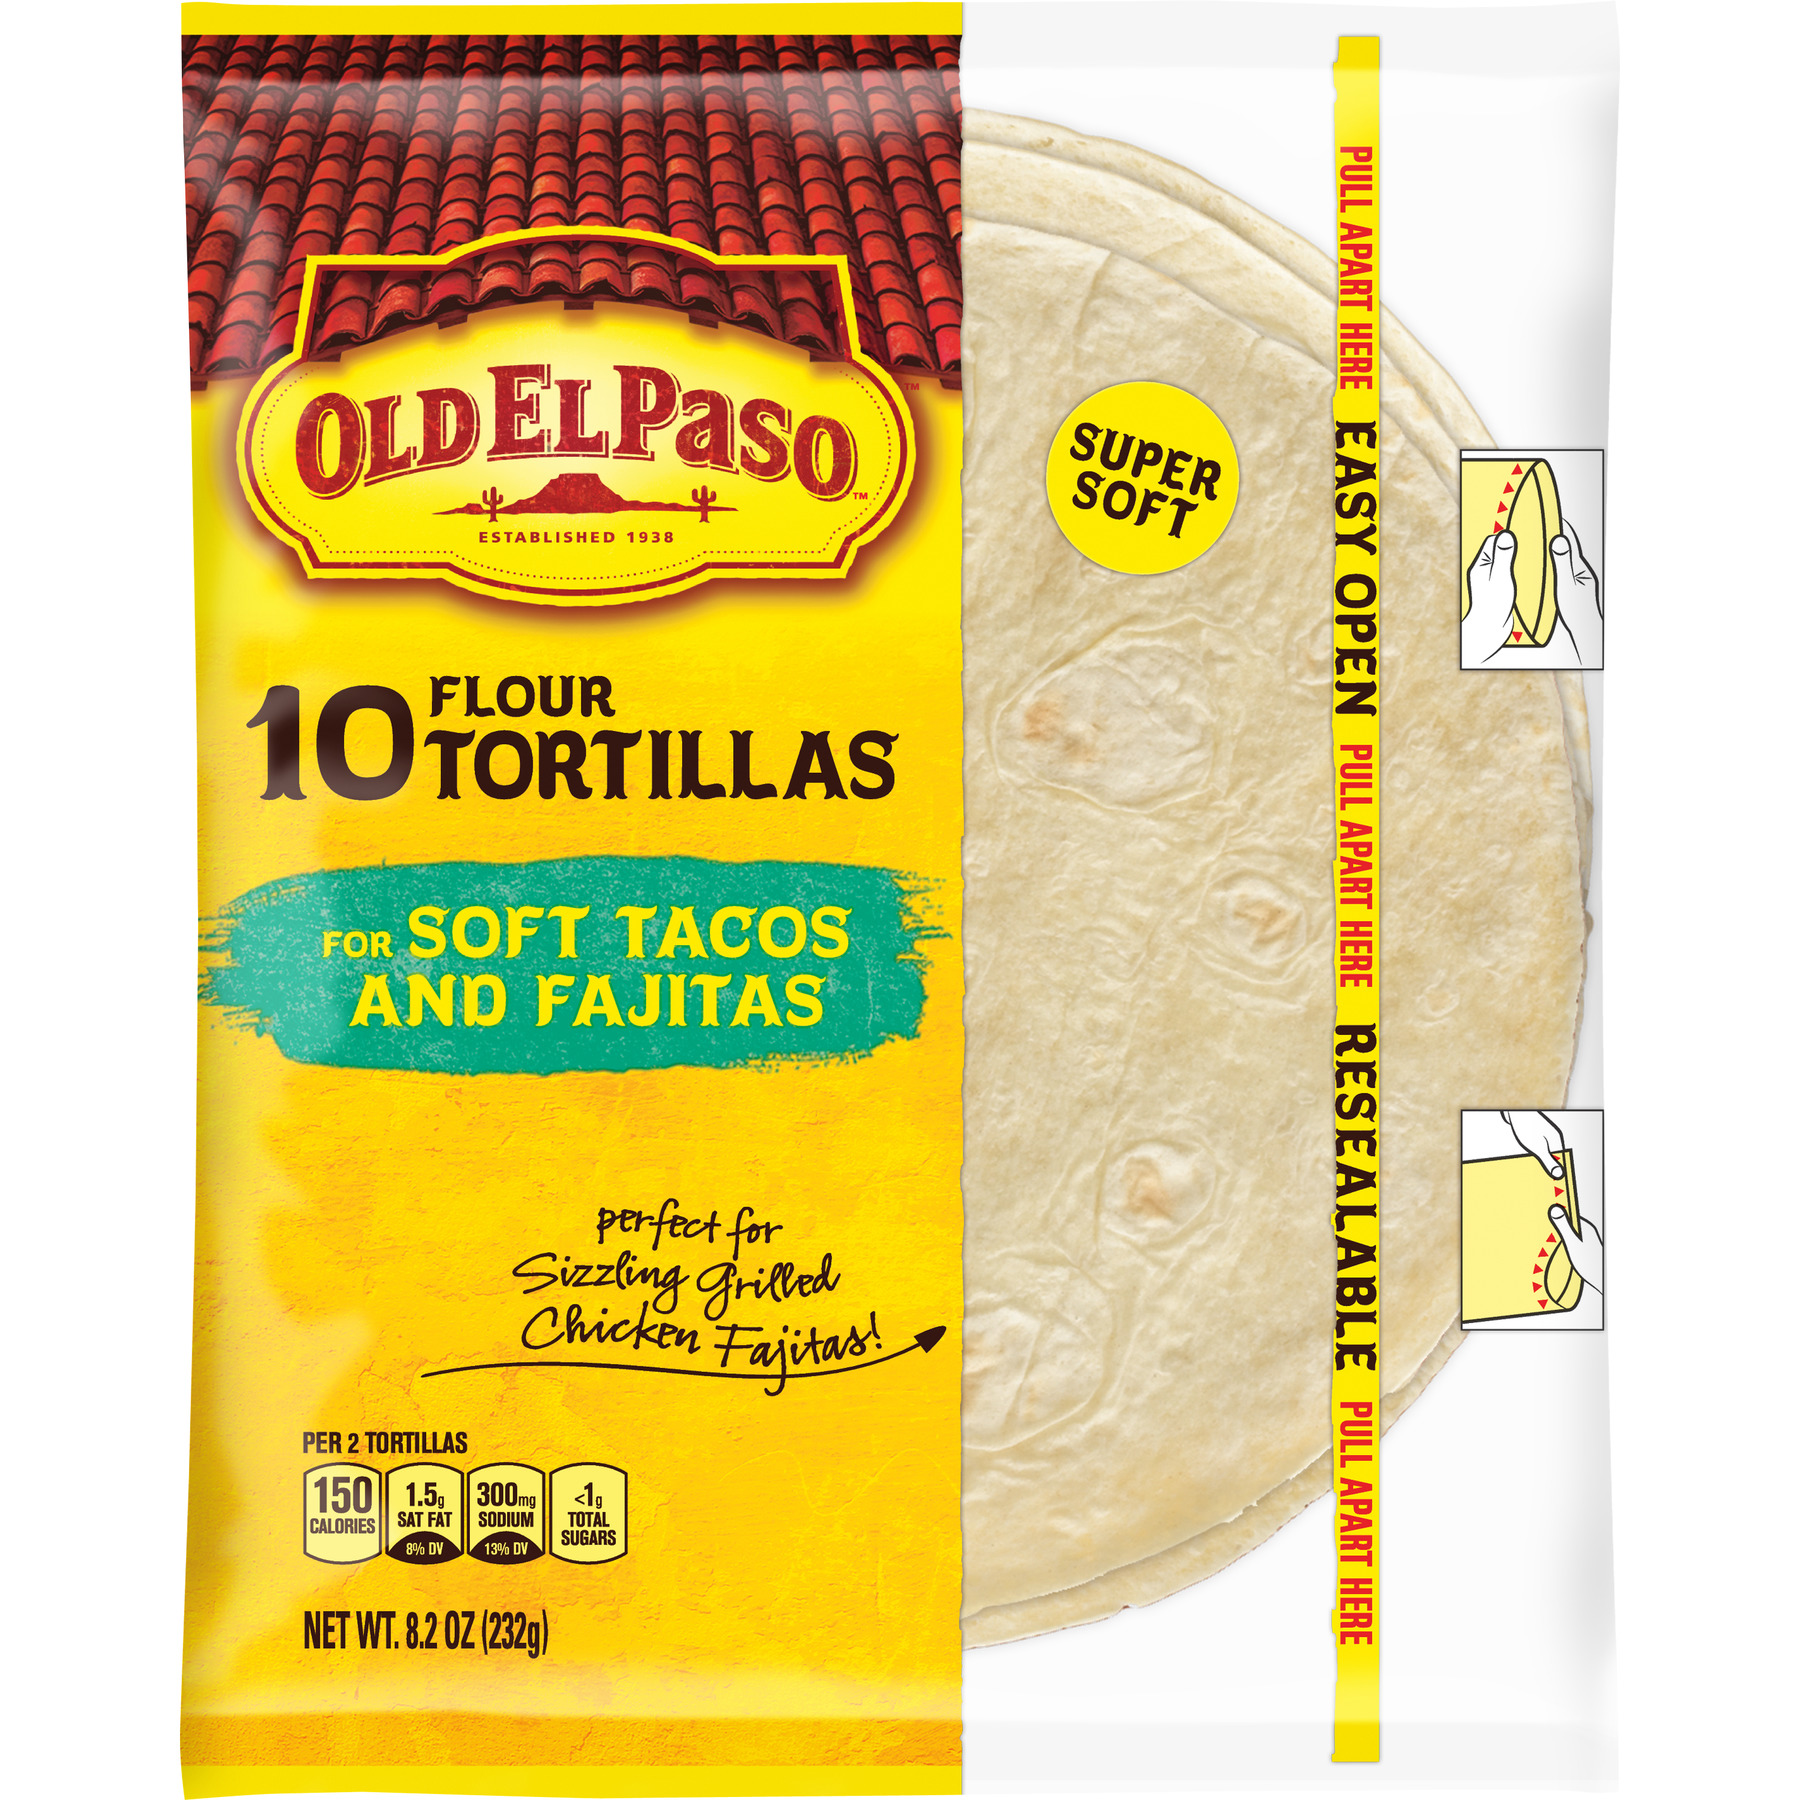 Old El Paso Flour Tortilla Shells, 10 Ct, 8.2 oz